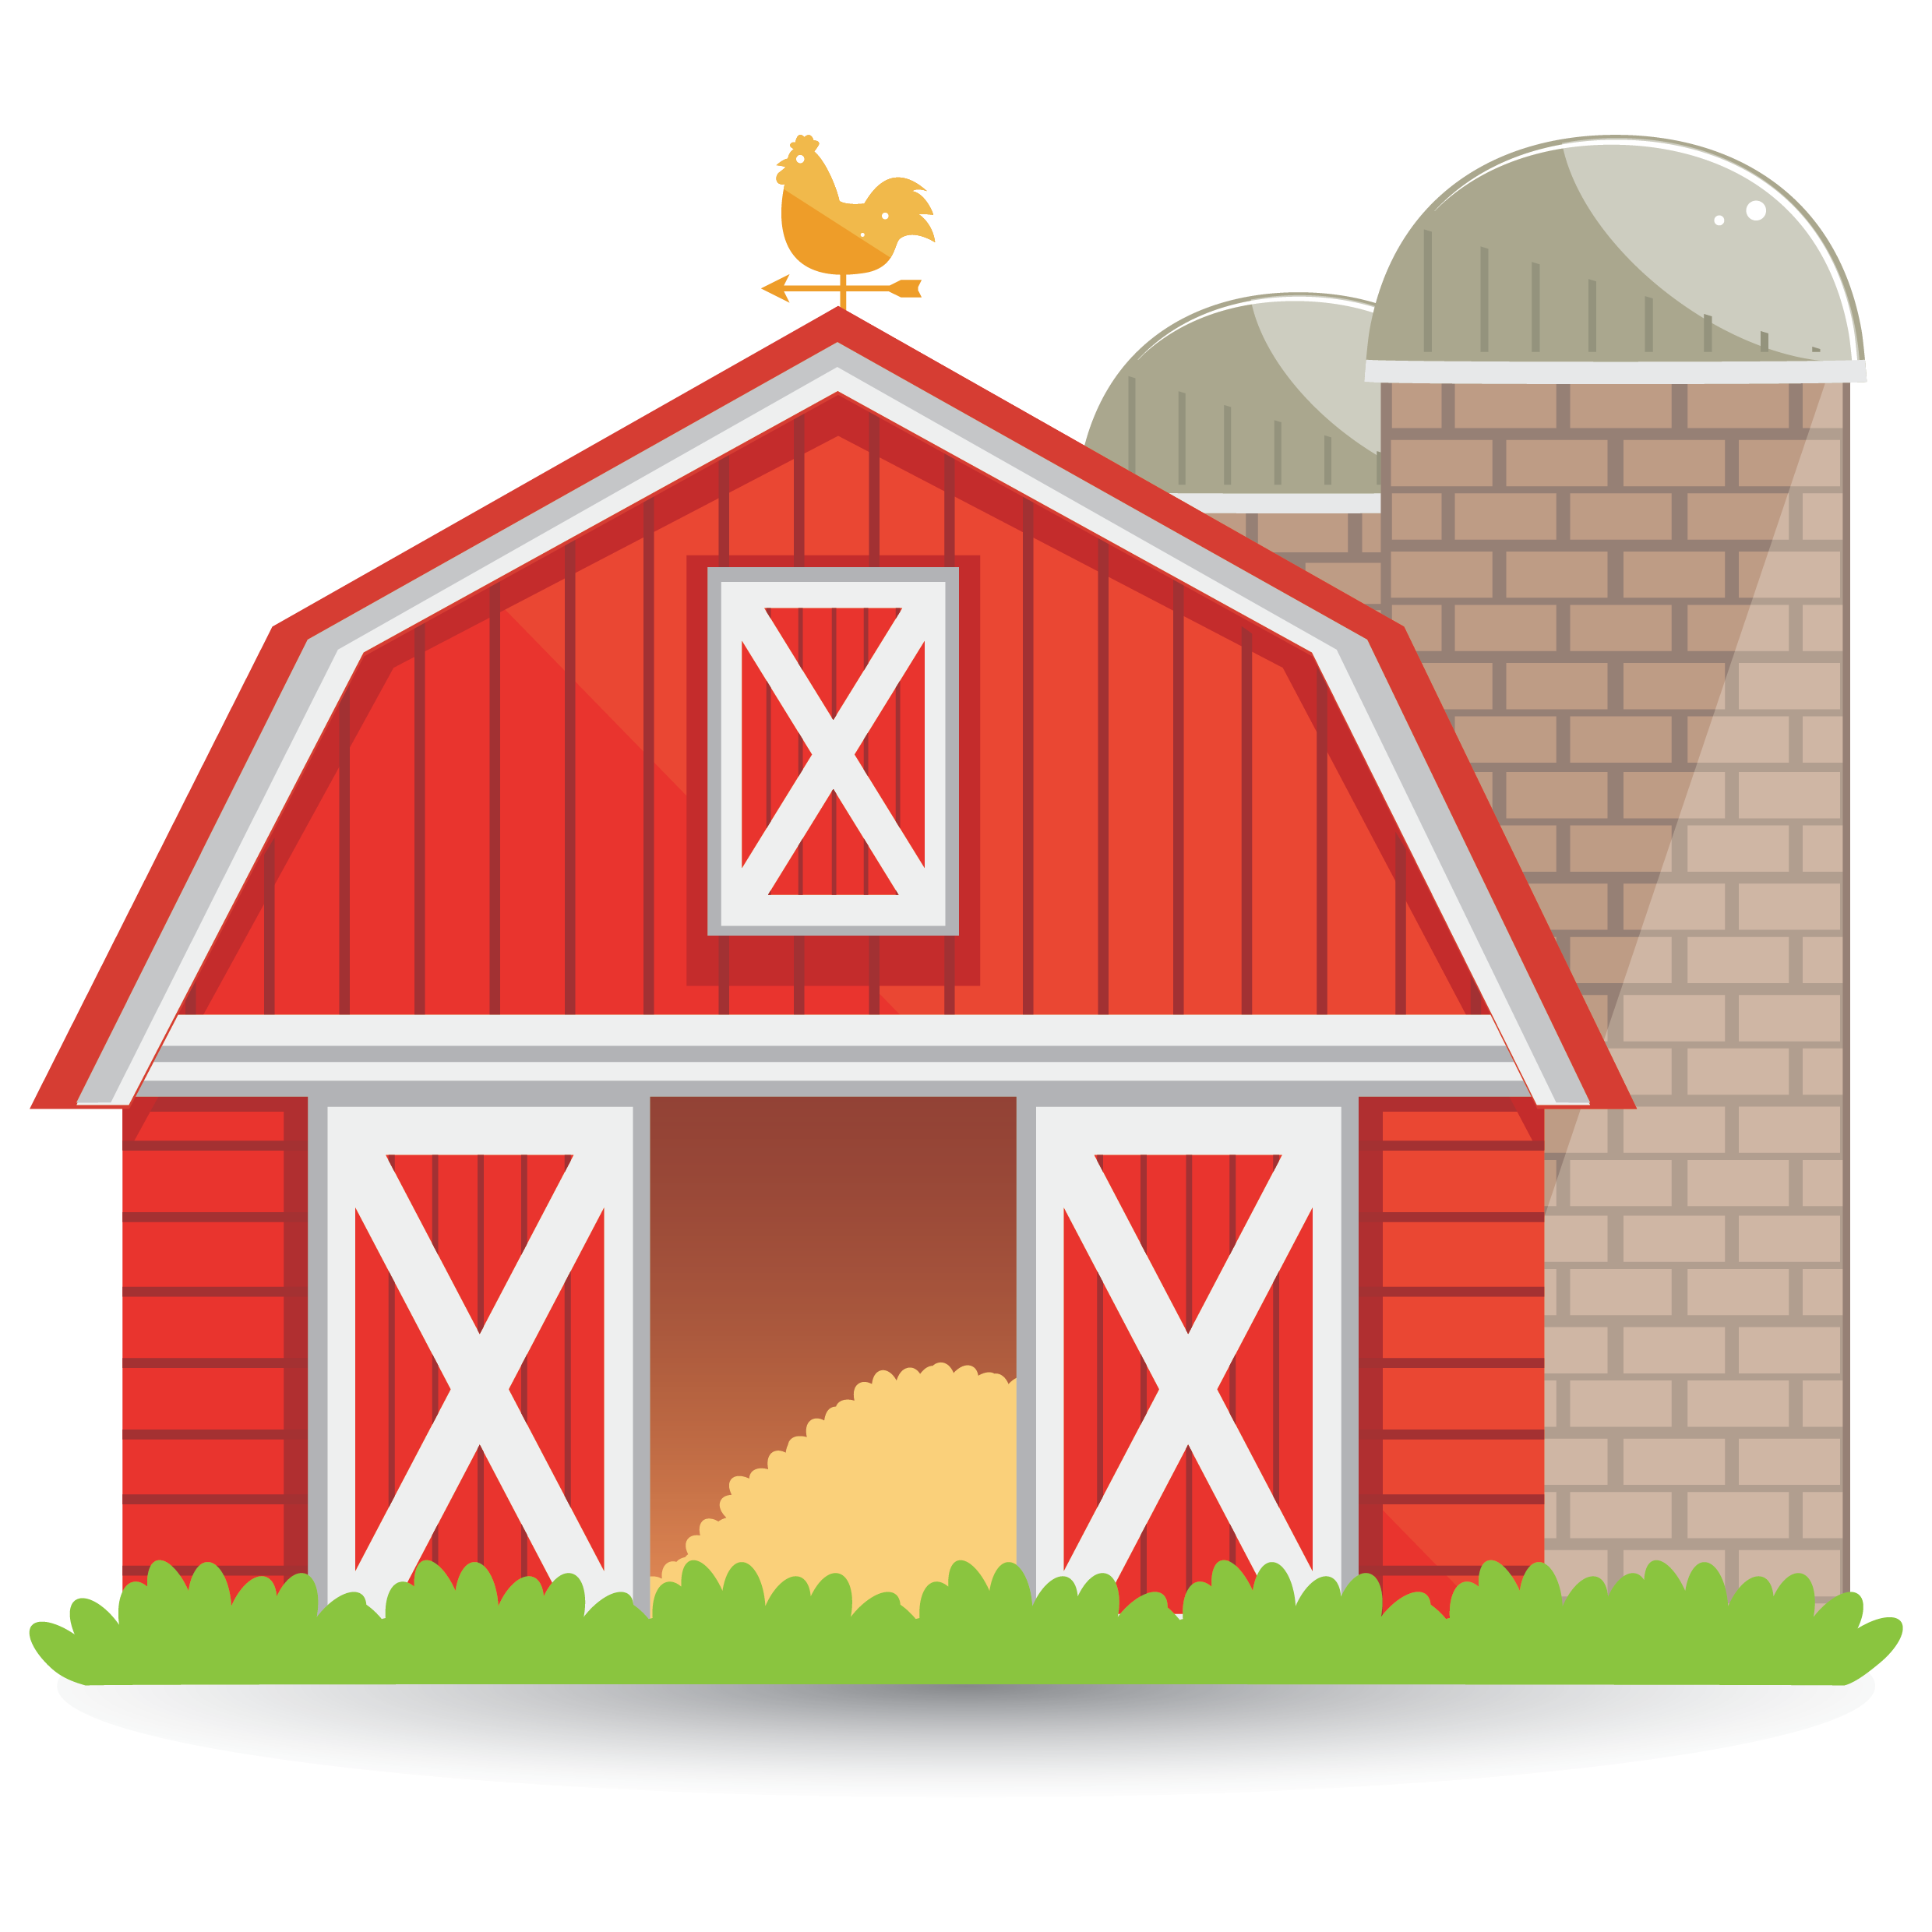 Roof,Clip art,Barn,House,Shed,Illustration,Building,Real estate,Home.